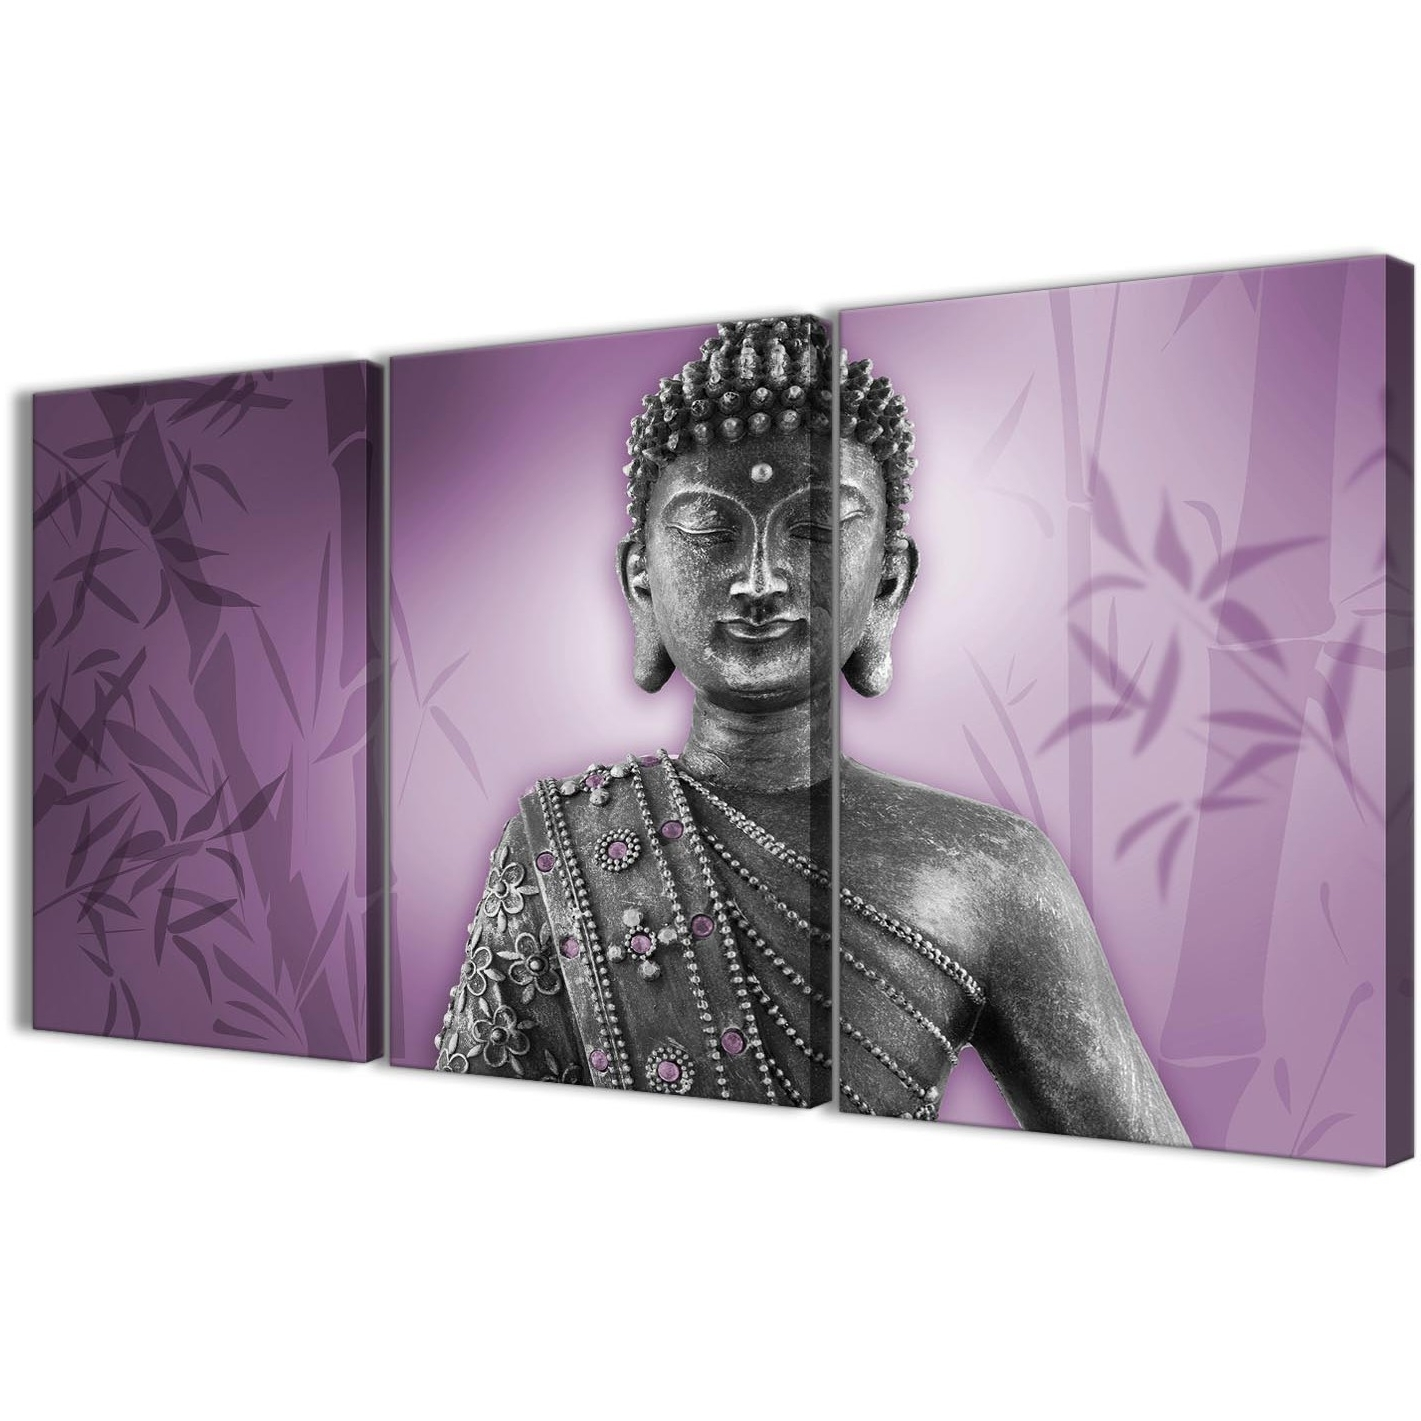 2018 Purple And Grey Silver Canvas Art Prints Of Buddha – Multi Set Of 3 For Wall Art Prints (View 2 of 20)